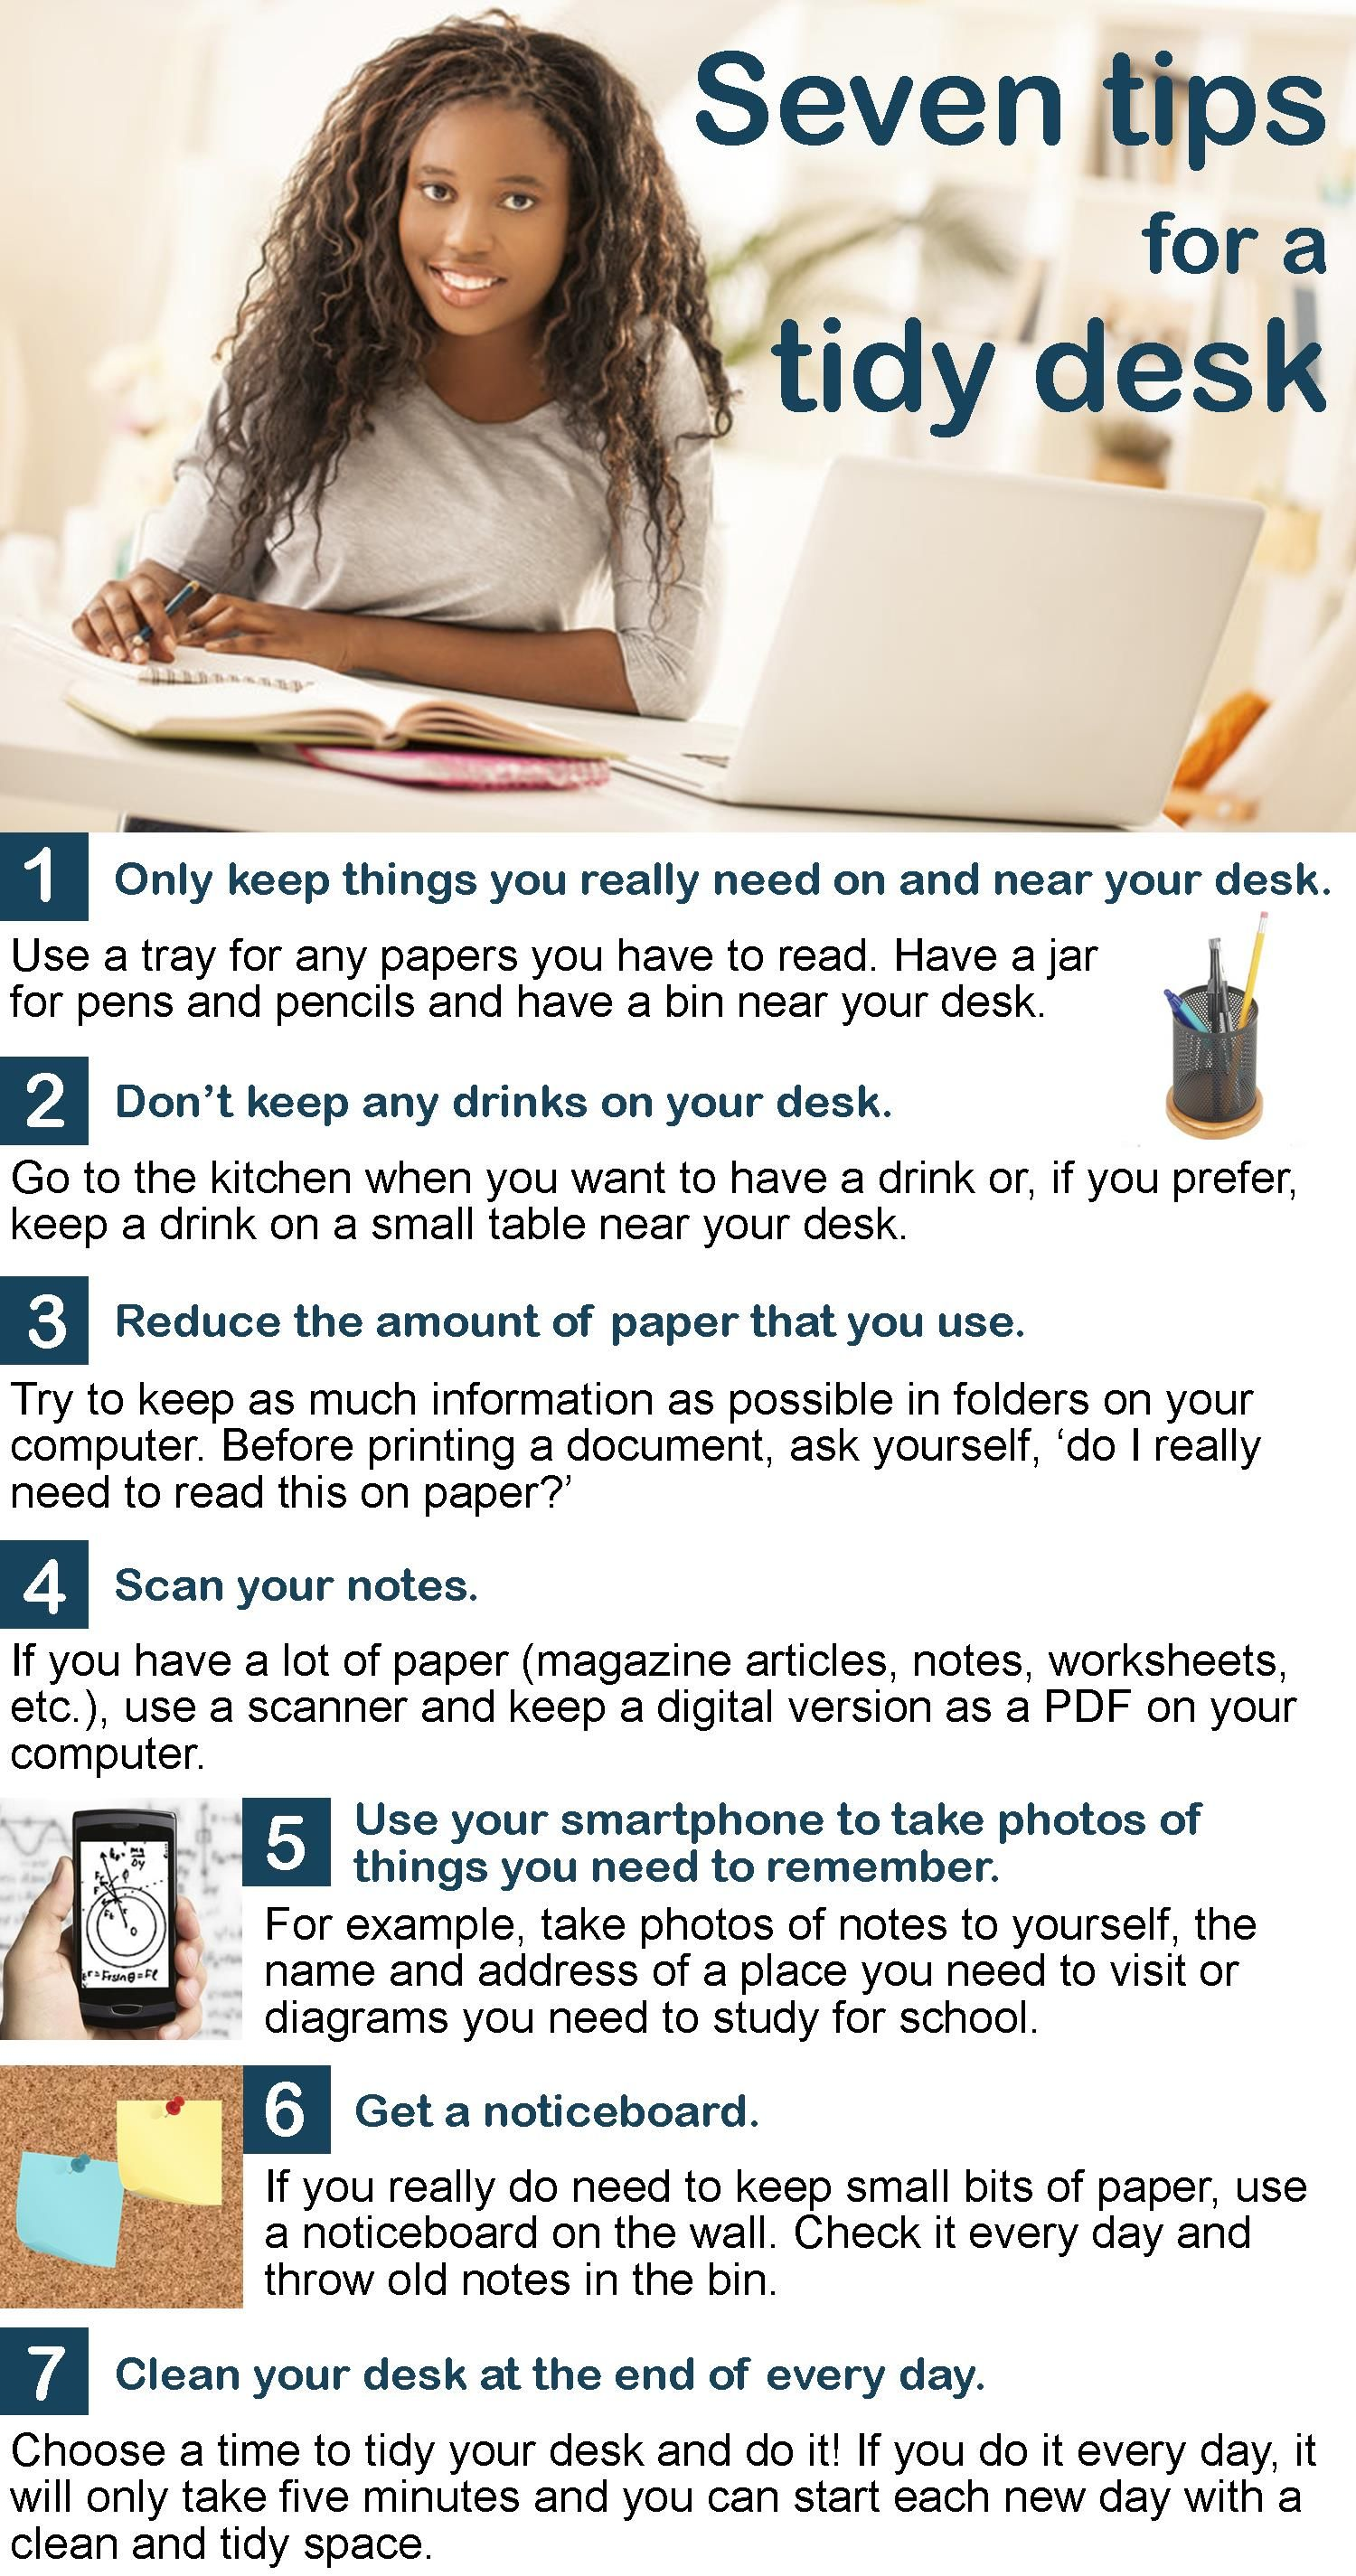 7 Tips For A Tidy Desk English Reading Reading Skills Practice Flirting Quotes For Her [ 2850 x 1500 Pixel ]